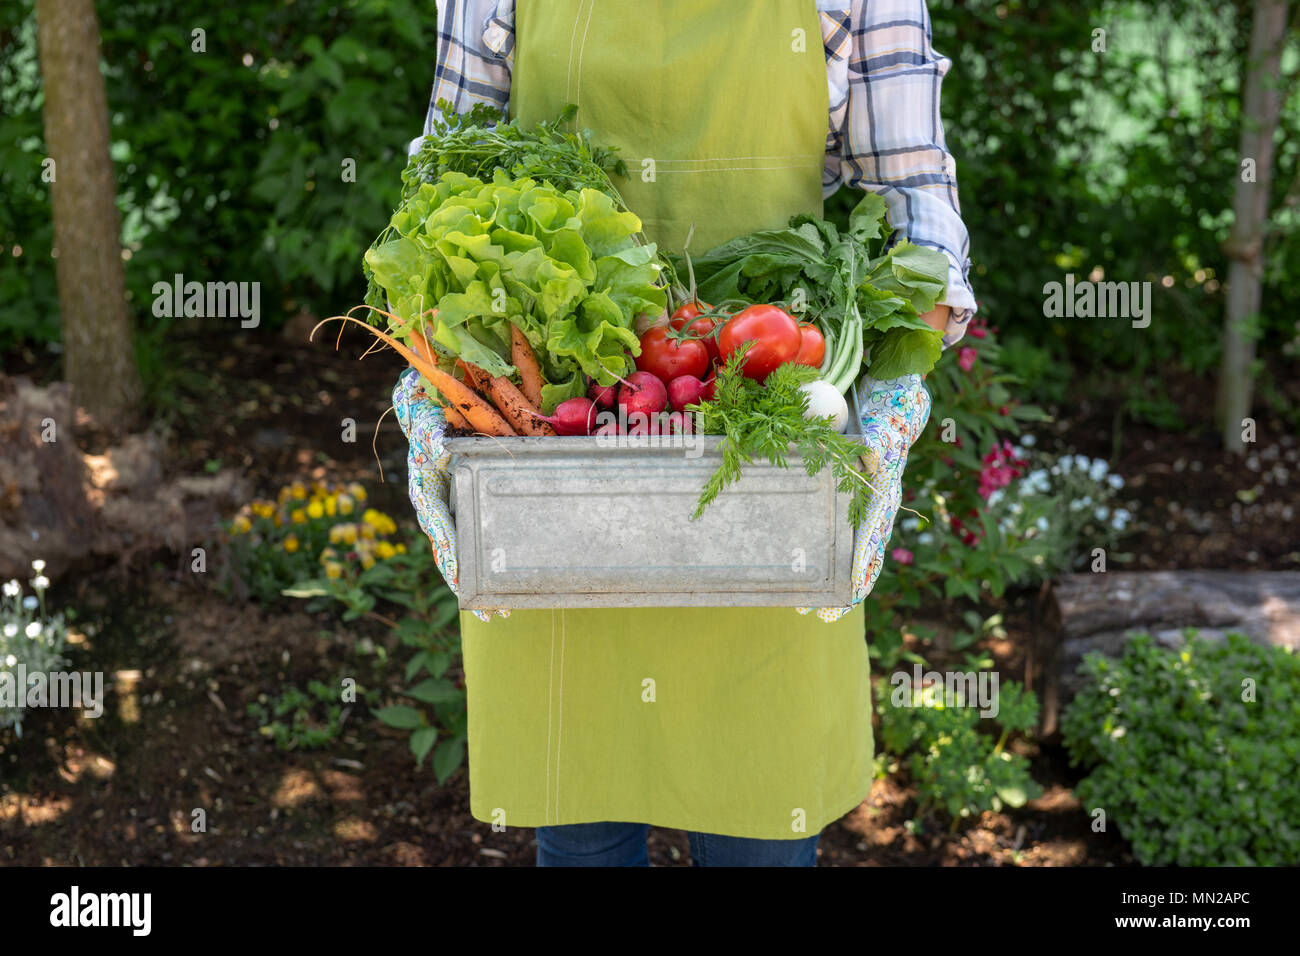 Unrecognisable female farmer holding crate full of freshly harvested vegetables in her garden. Homegrown bio produce concept. - Stock Image